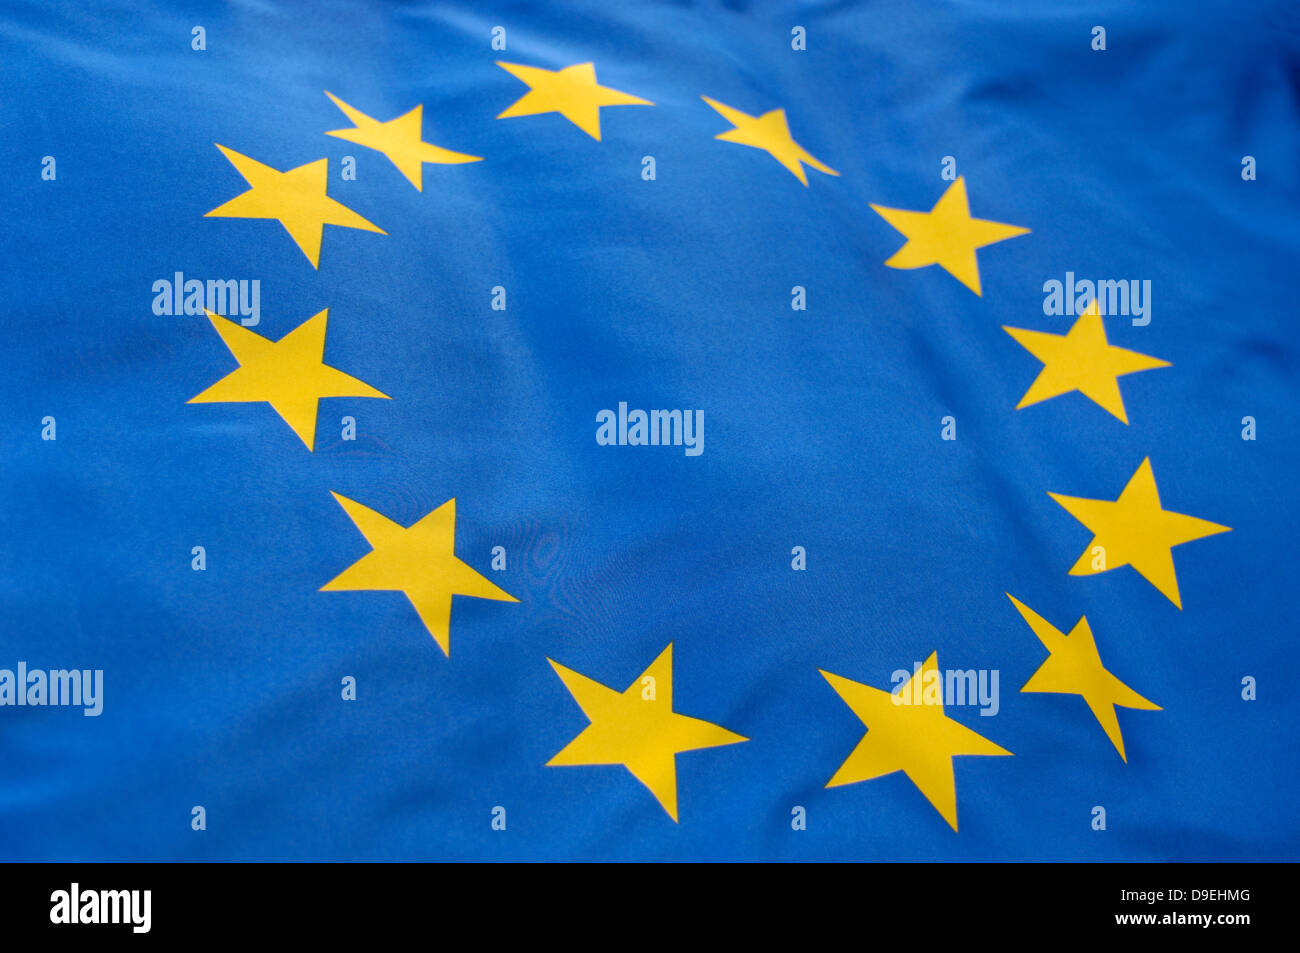 flag of EEC, europe, stars, EG, european community - Stock Image